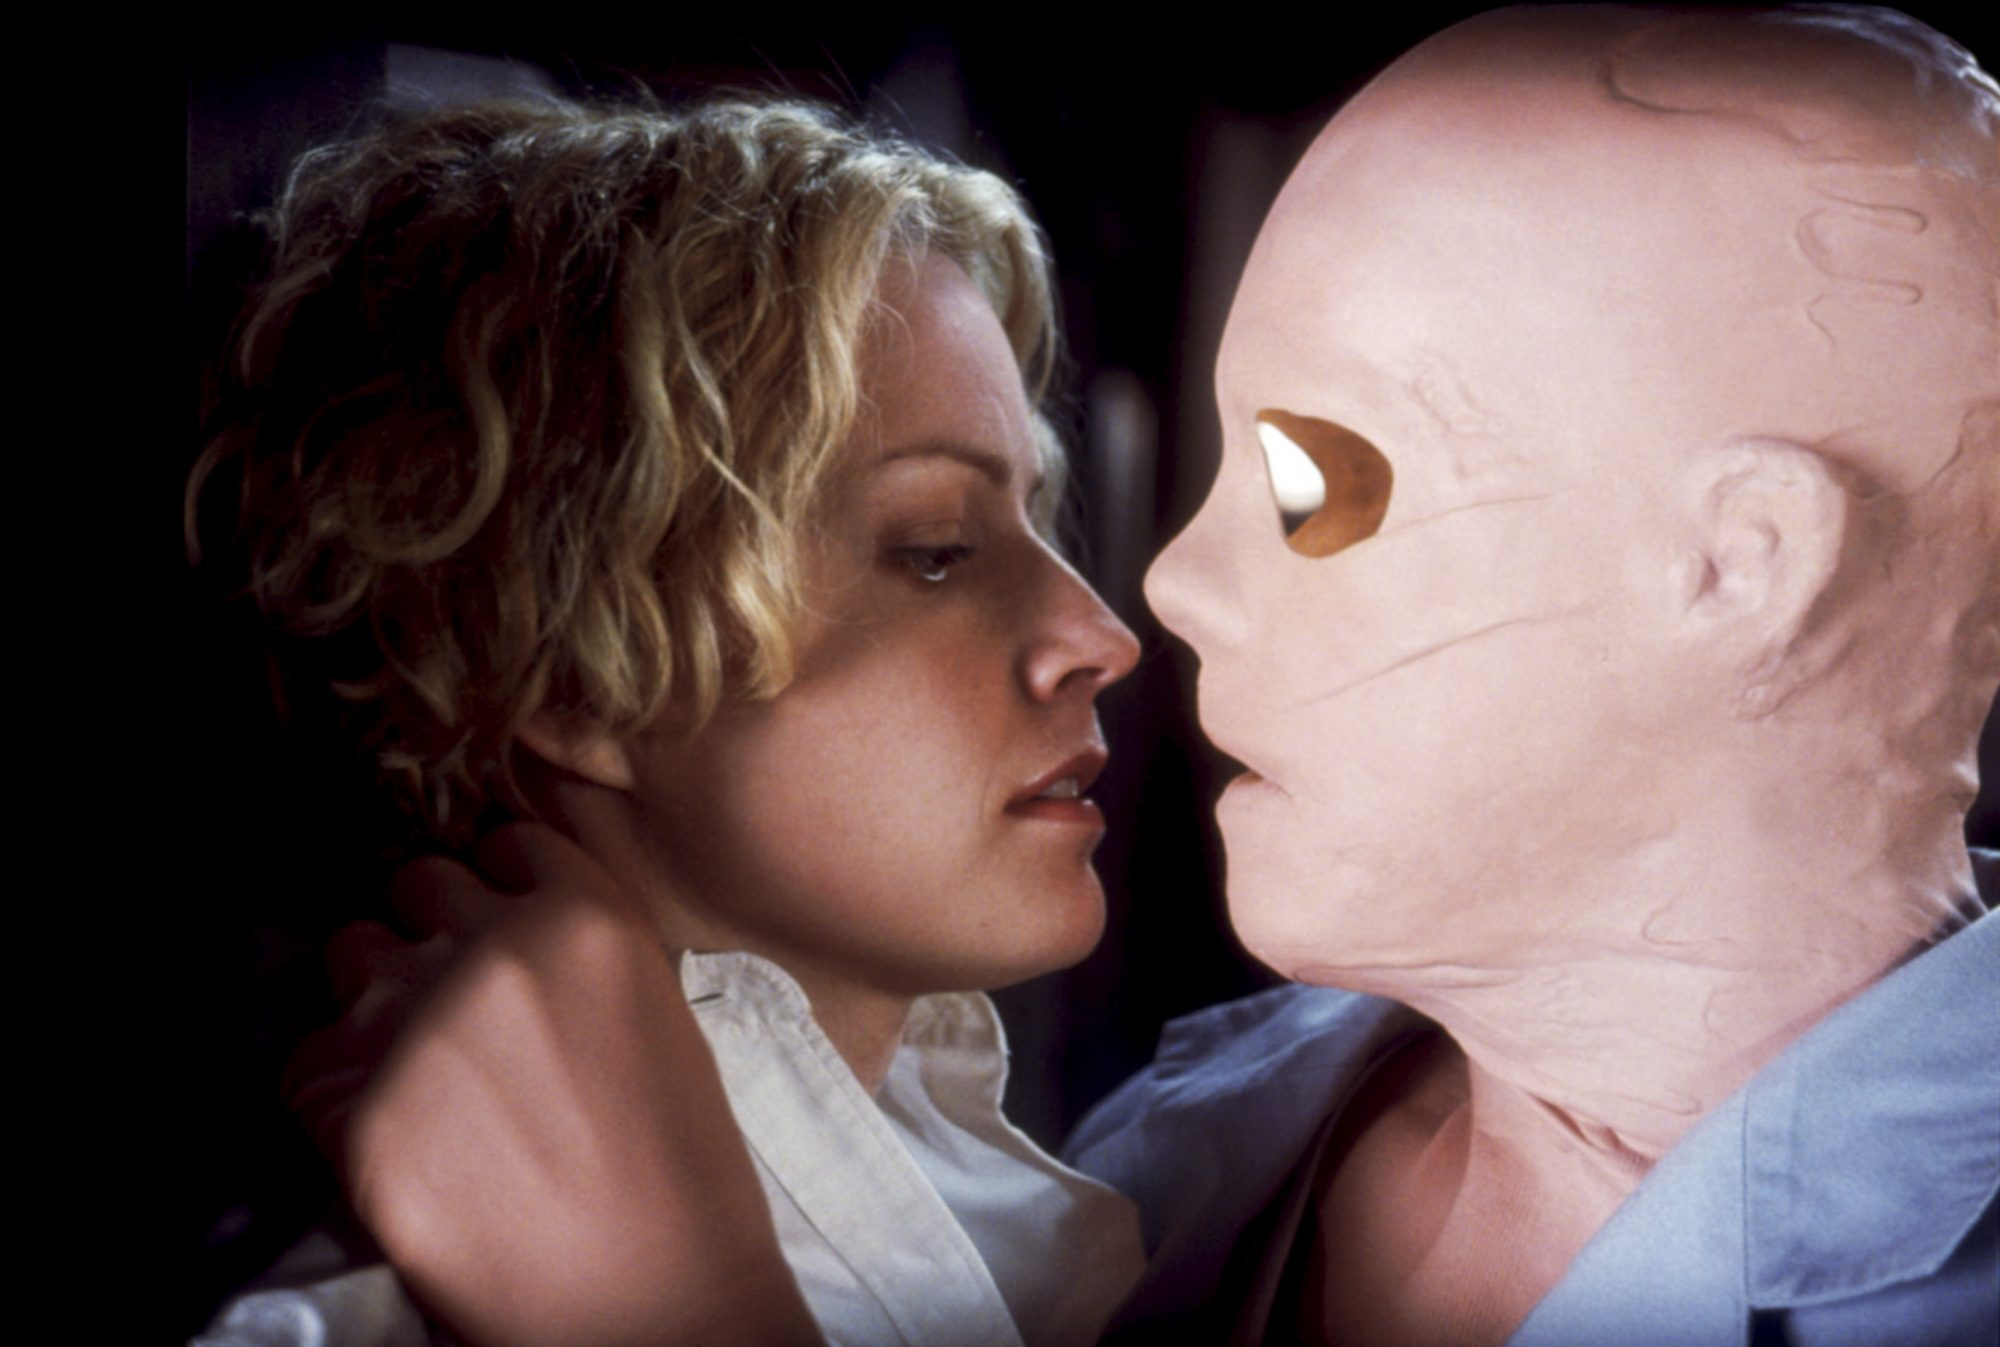 HOLLOW MAN, Elisabeth Shue, Kevin Bacon, 2000, confrontation with invisible man